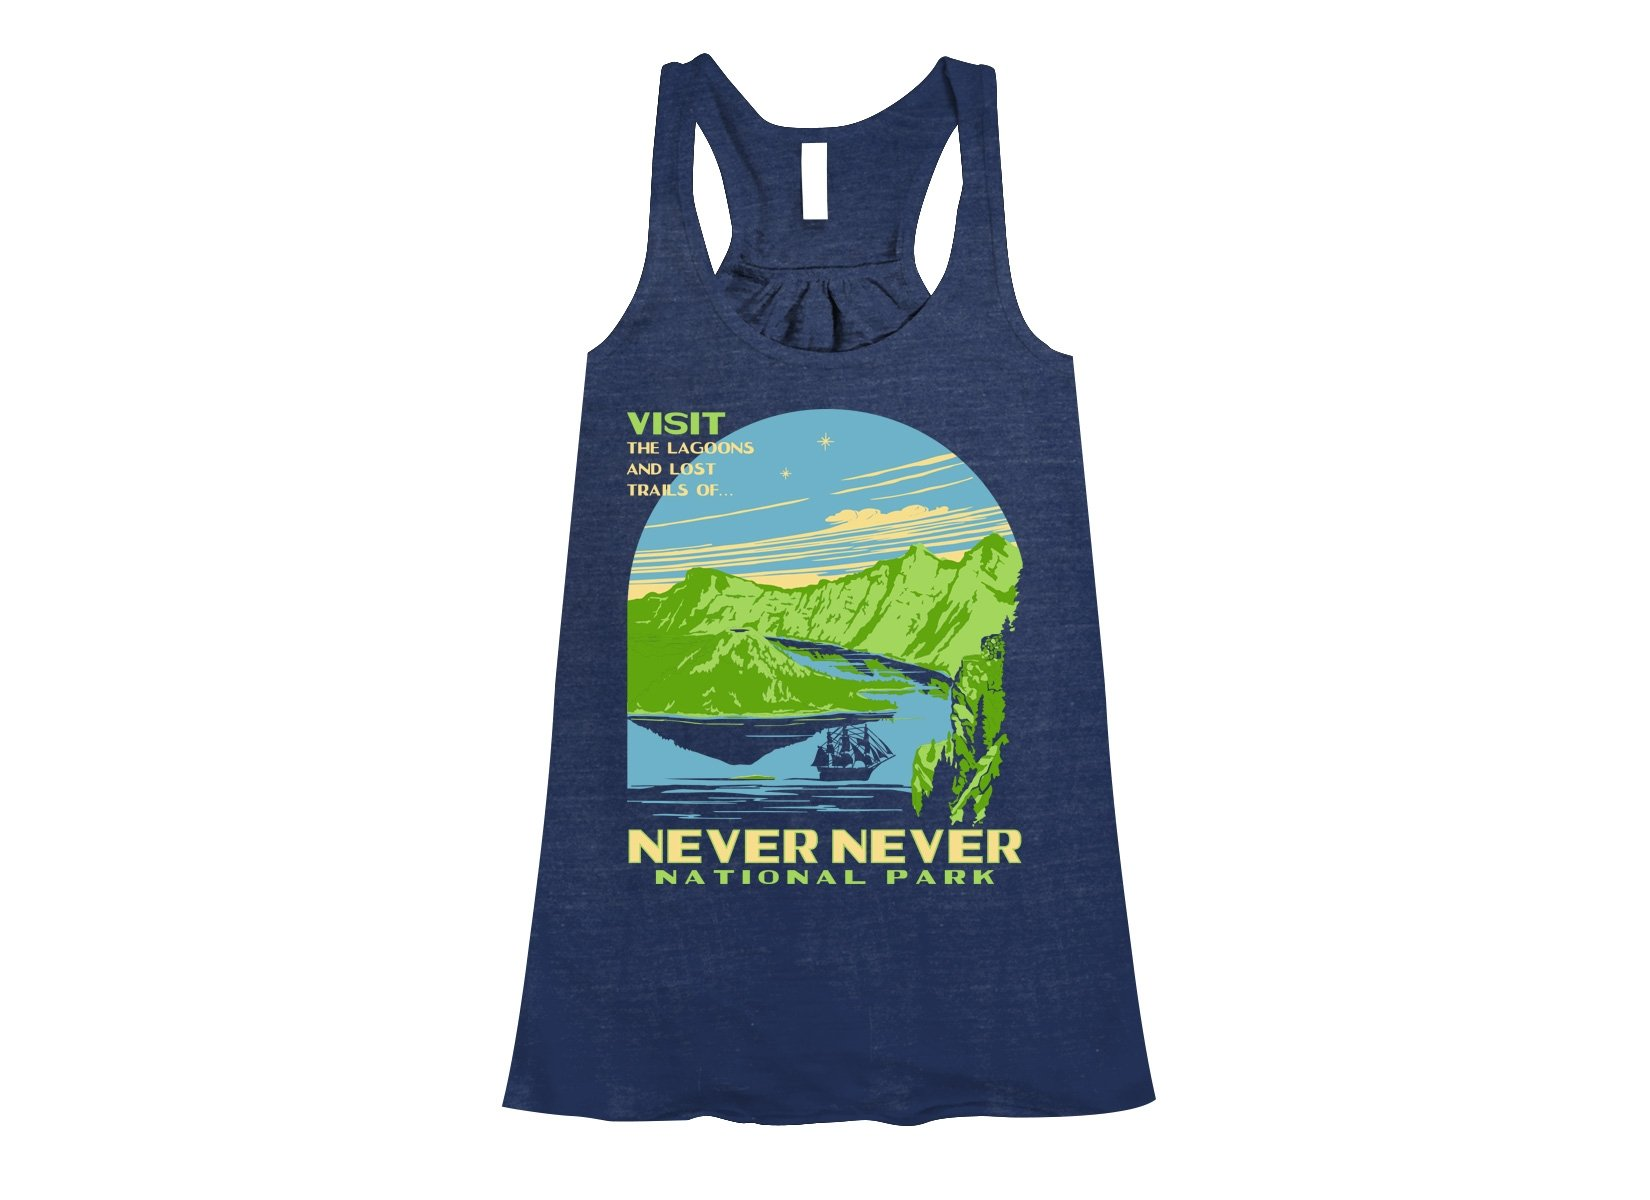 Never Never National Park on Womens Tanks T-Shirt